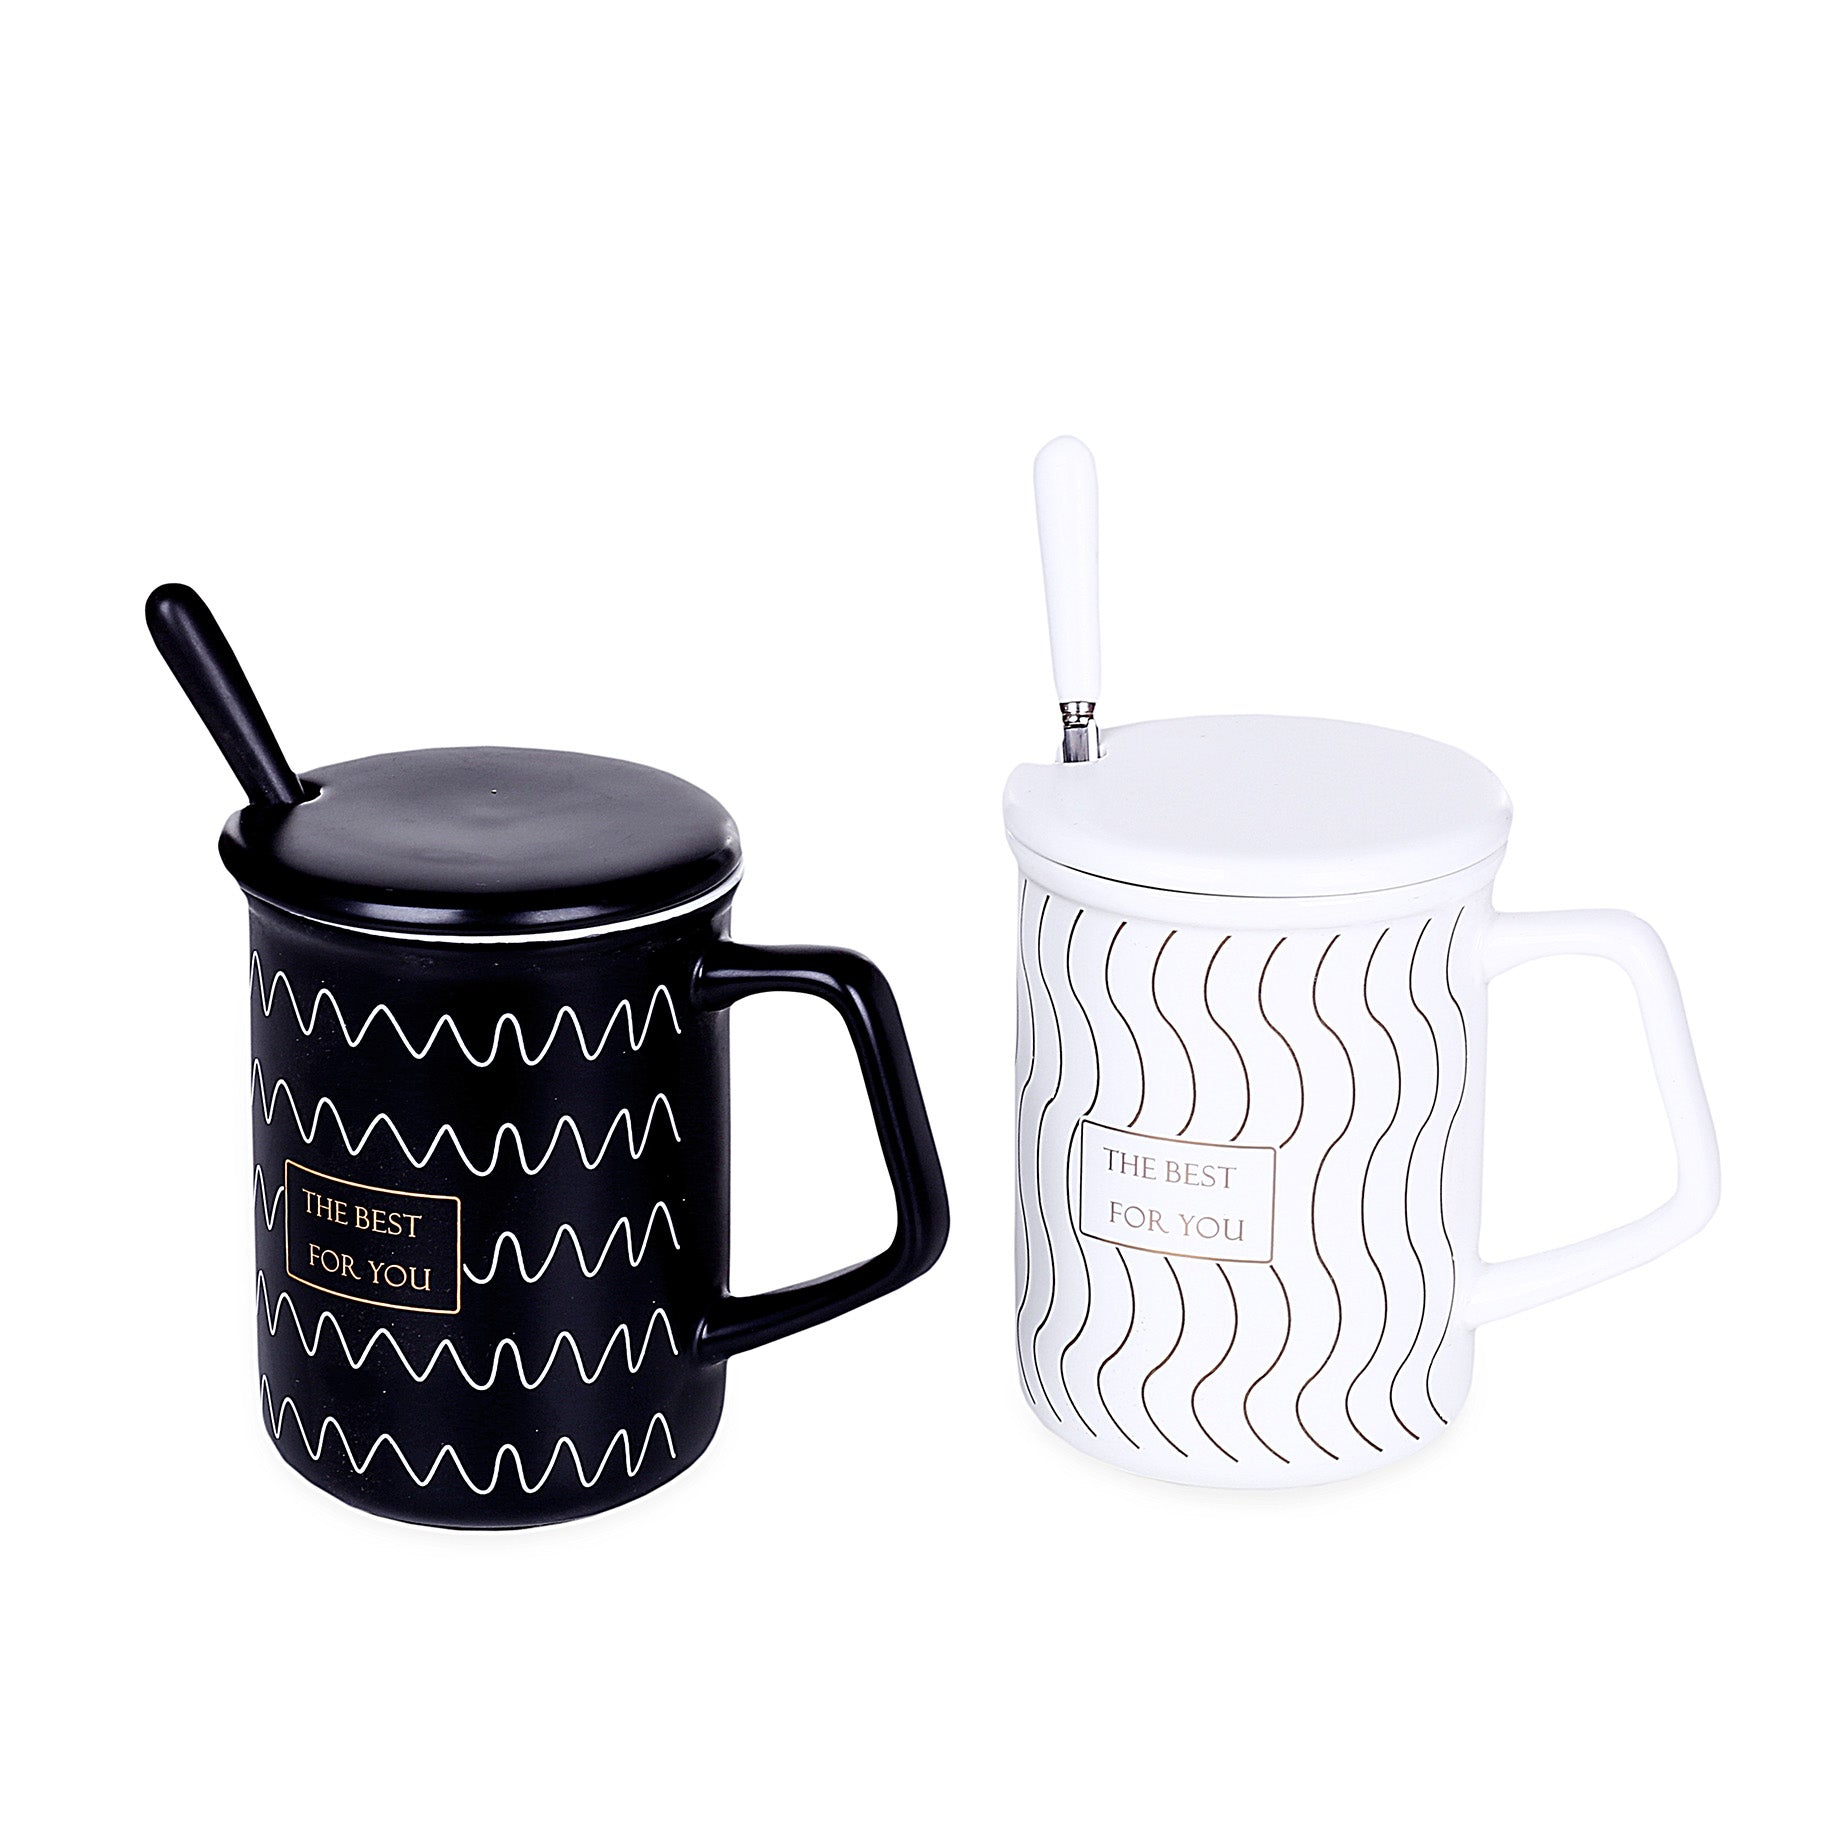 Wavy Design Mugs With Lid & Spoon (Set Of 2)